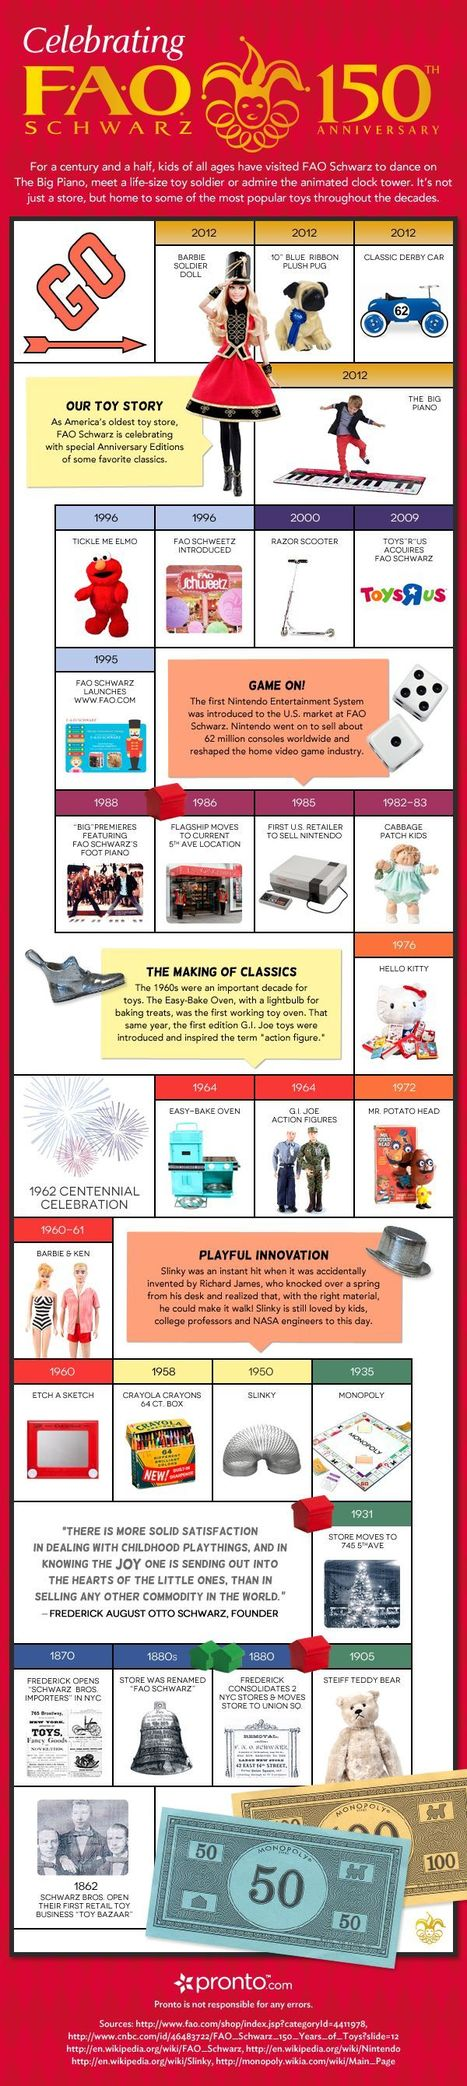 What was your favorite childhood toy? (infographic) | Global Insights | Scoop.it